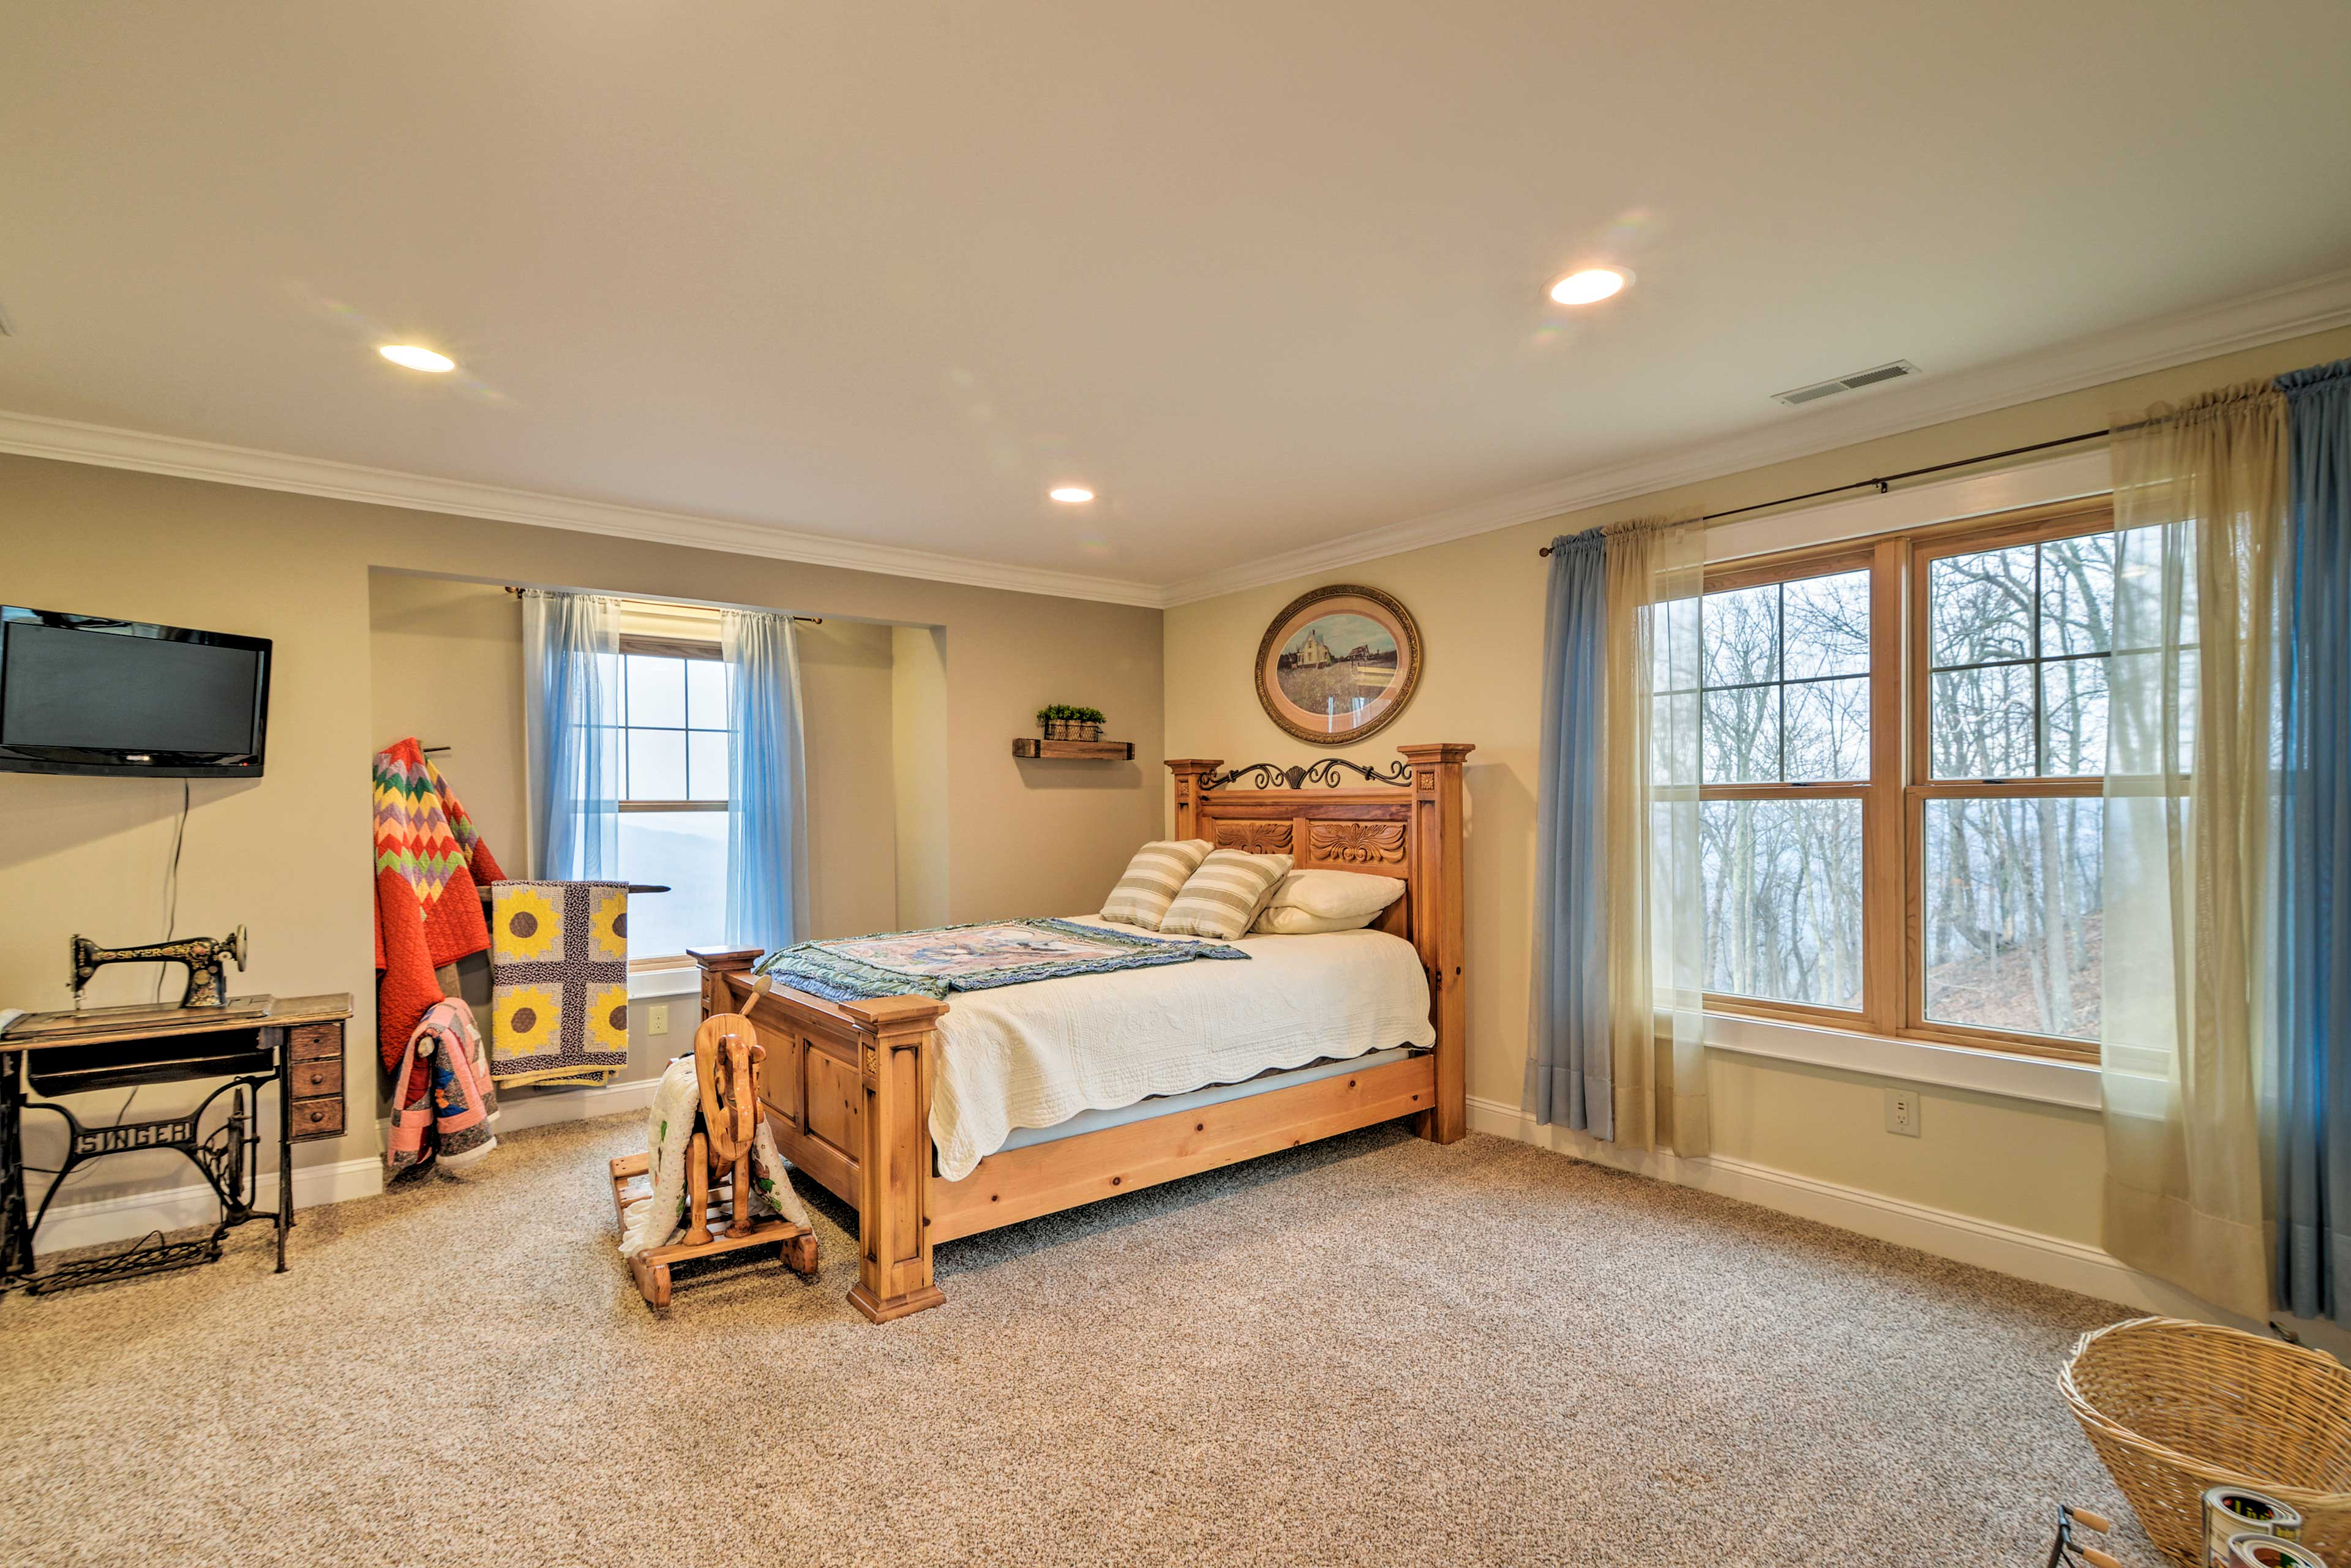 The third bedroom is also complete with a queen-sized bed.